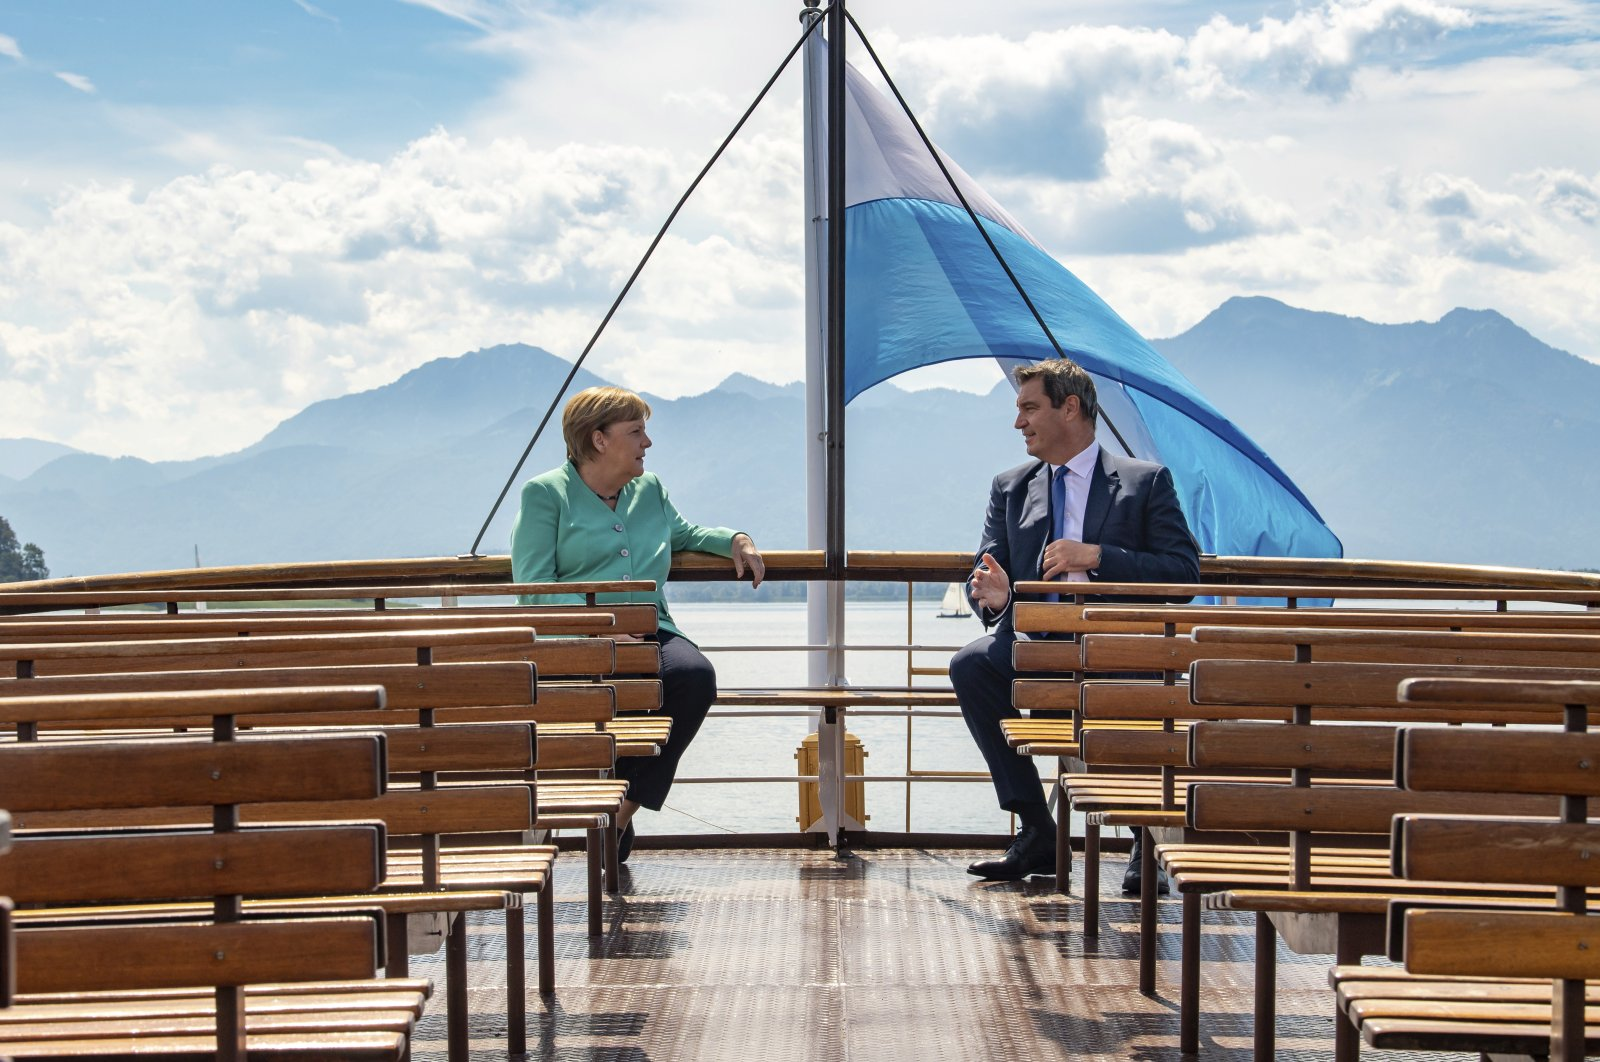 German Chancellor Angela, left, and Markus Soeder, right, Governour of the German state of Bavaria, talk during a boat tour in Priem Am Chiemsee, Germany, July 14, 2020. (AP Photo)